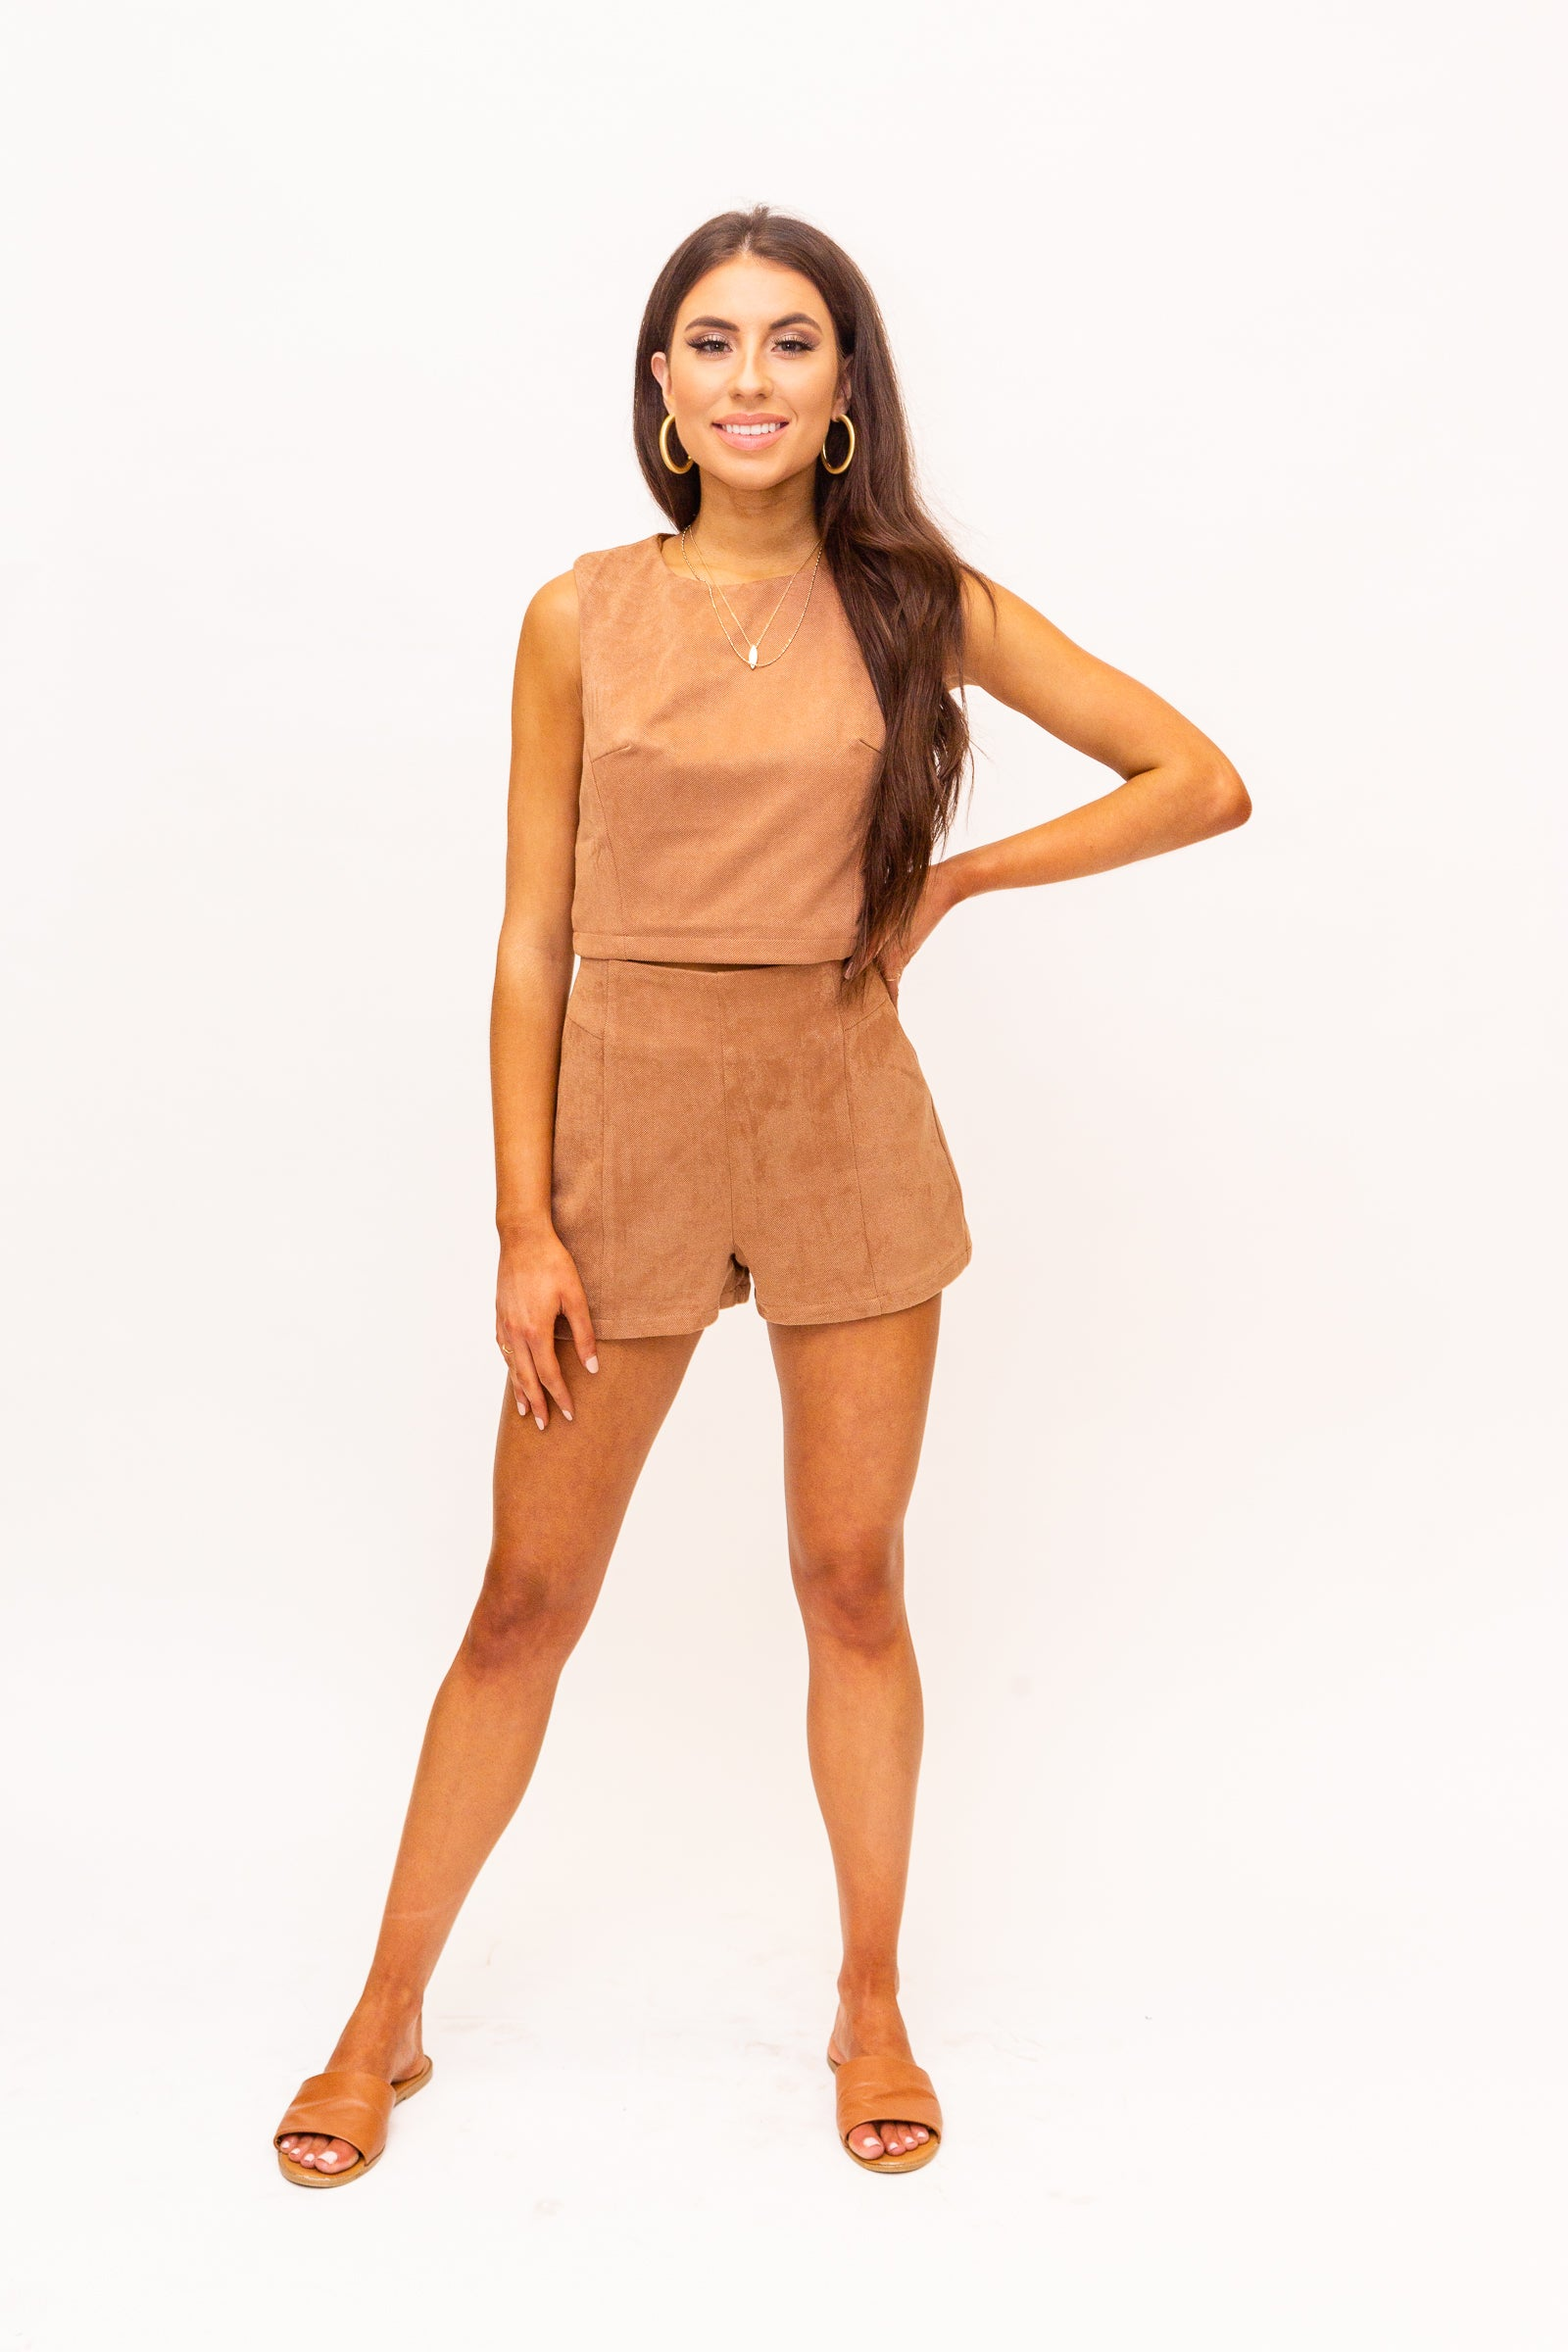 Medium straps attach to a high u-neckline on a fitted and darted crop bodice silhouette. This suede top features a zipper down the back of the crop top.